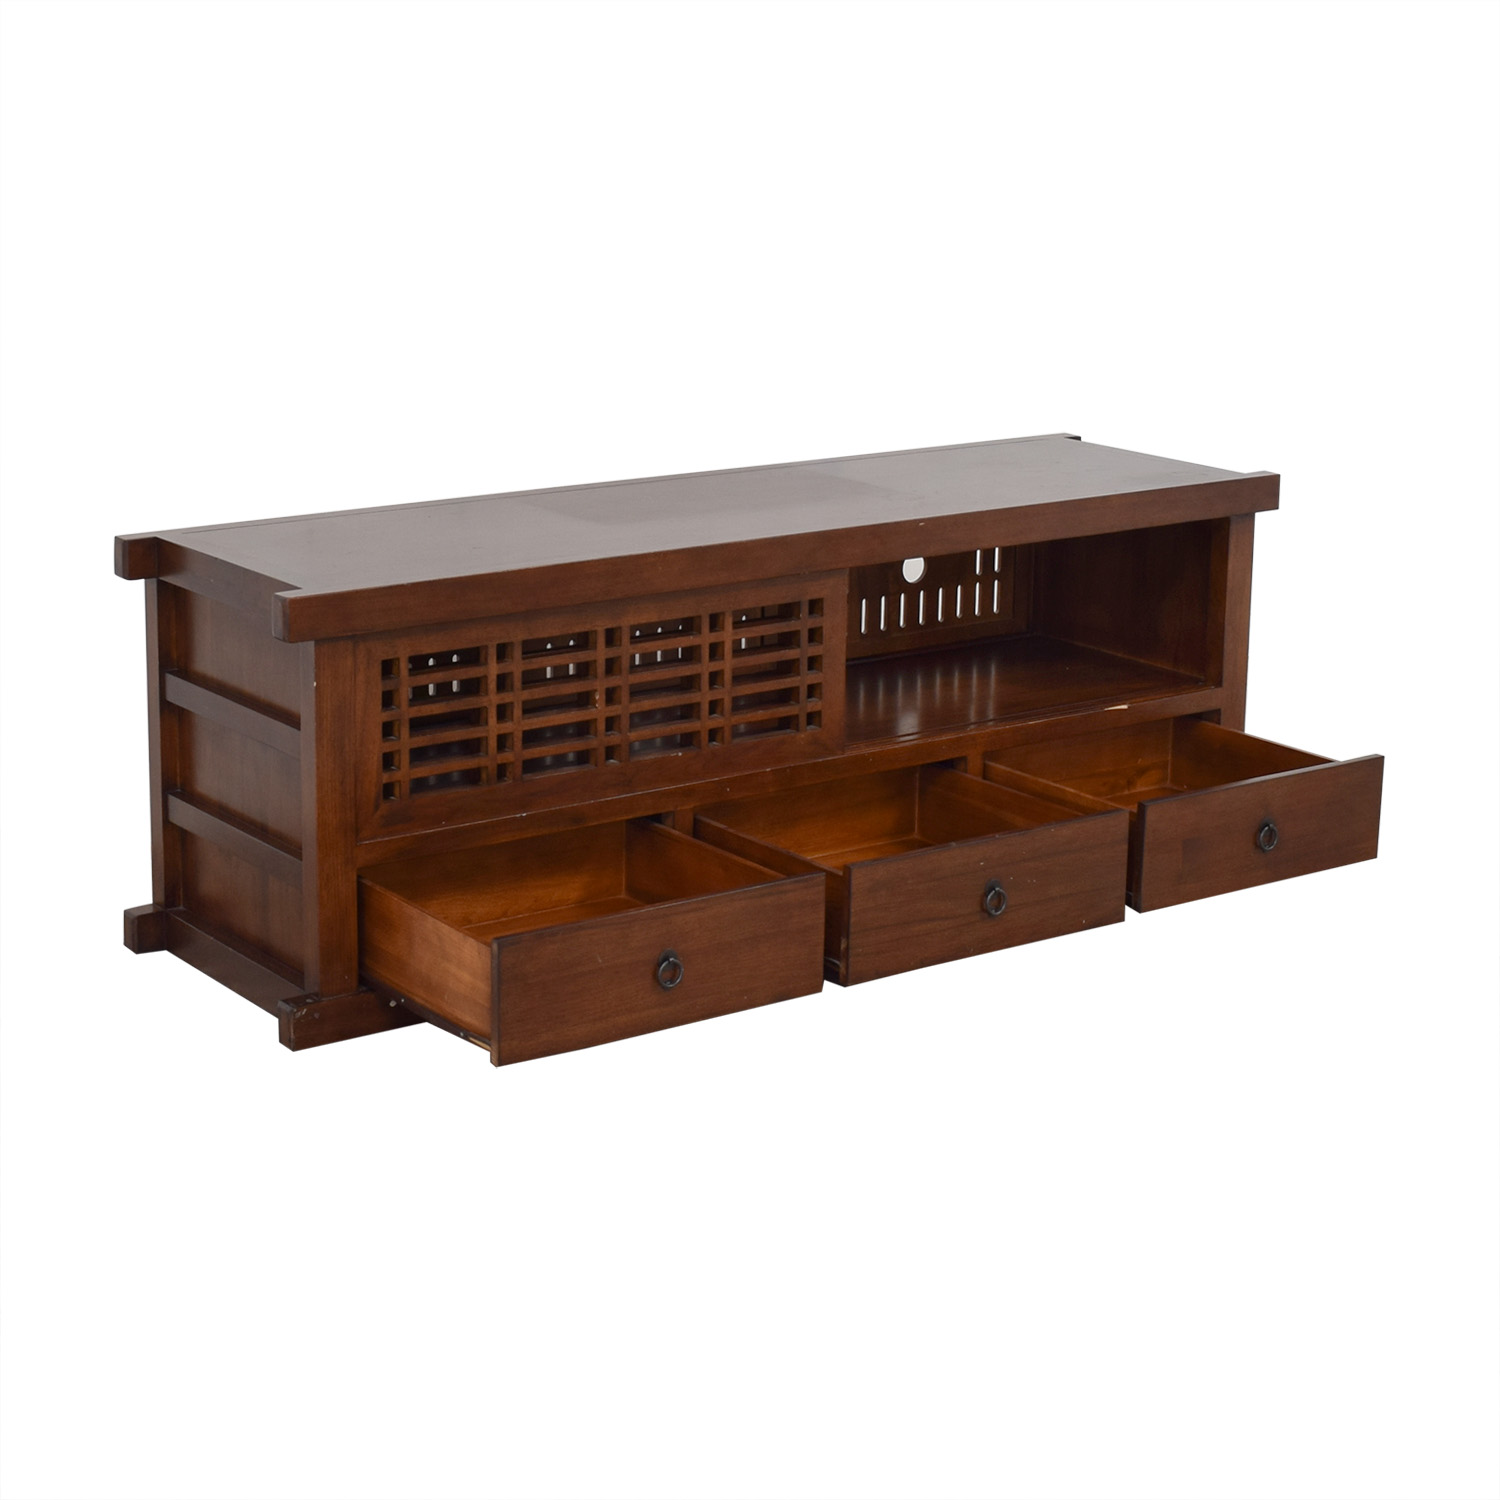 Room & Board Room & Board by Maria Yee Modern Media Console for sale